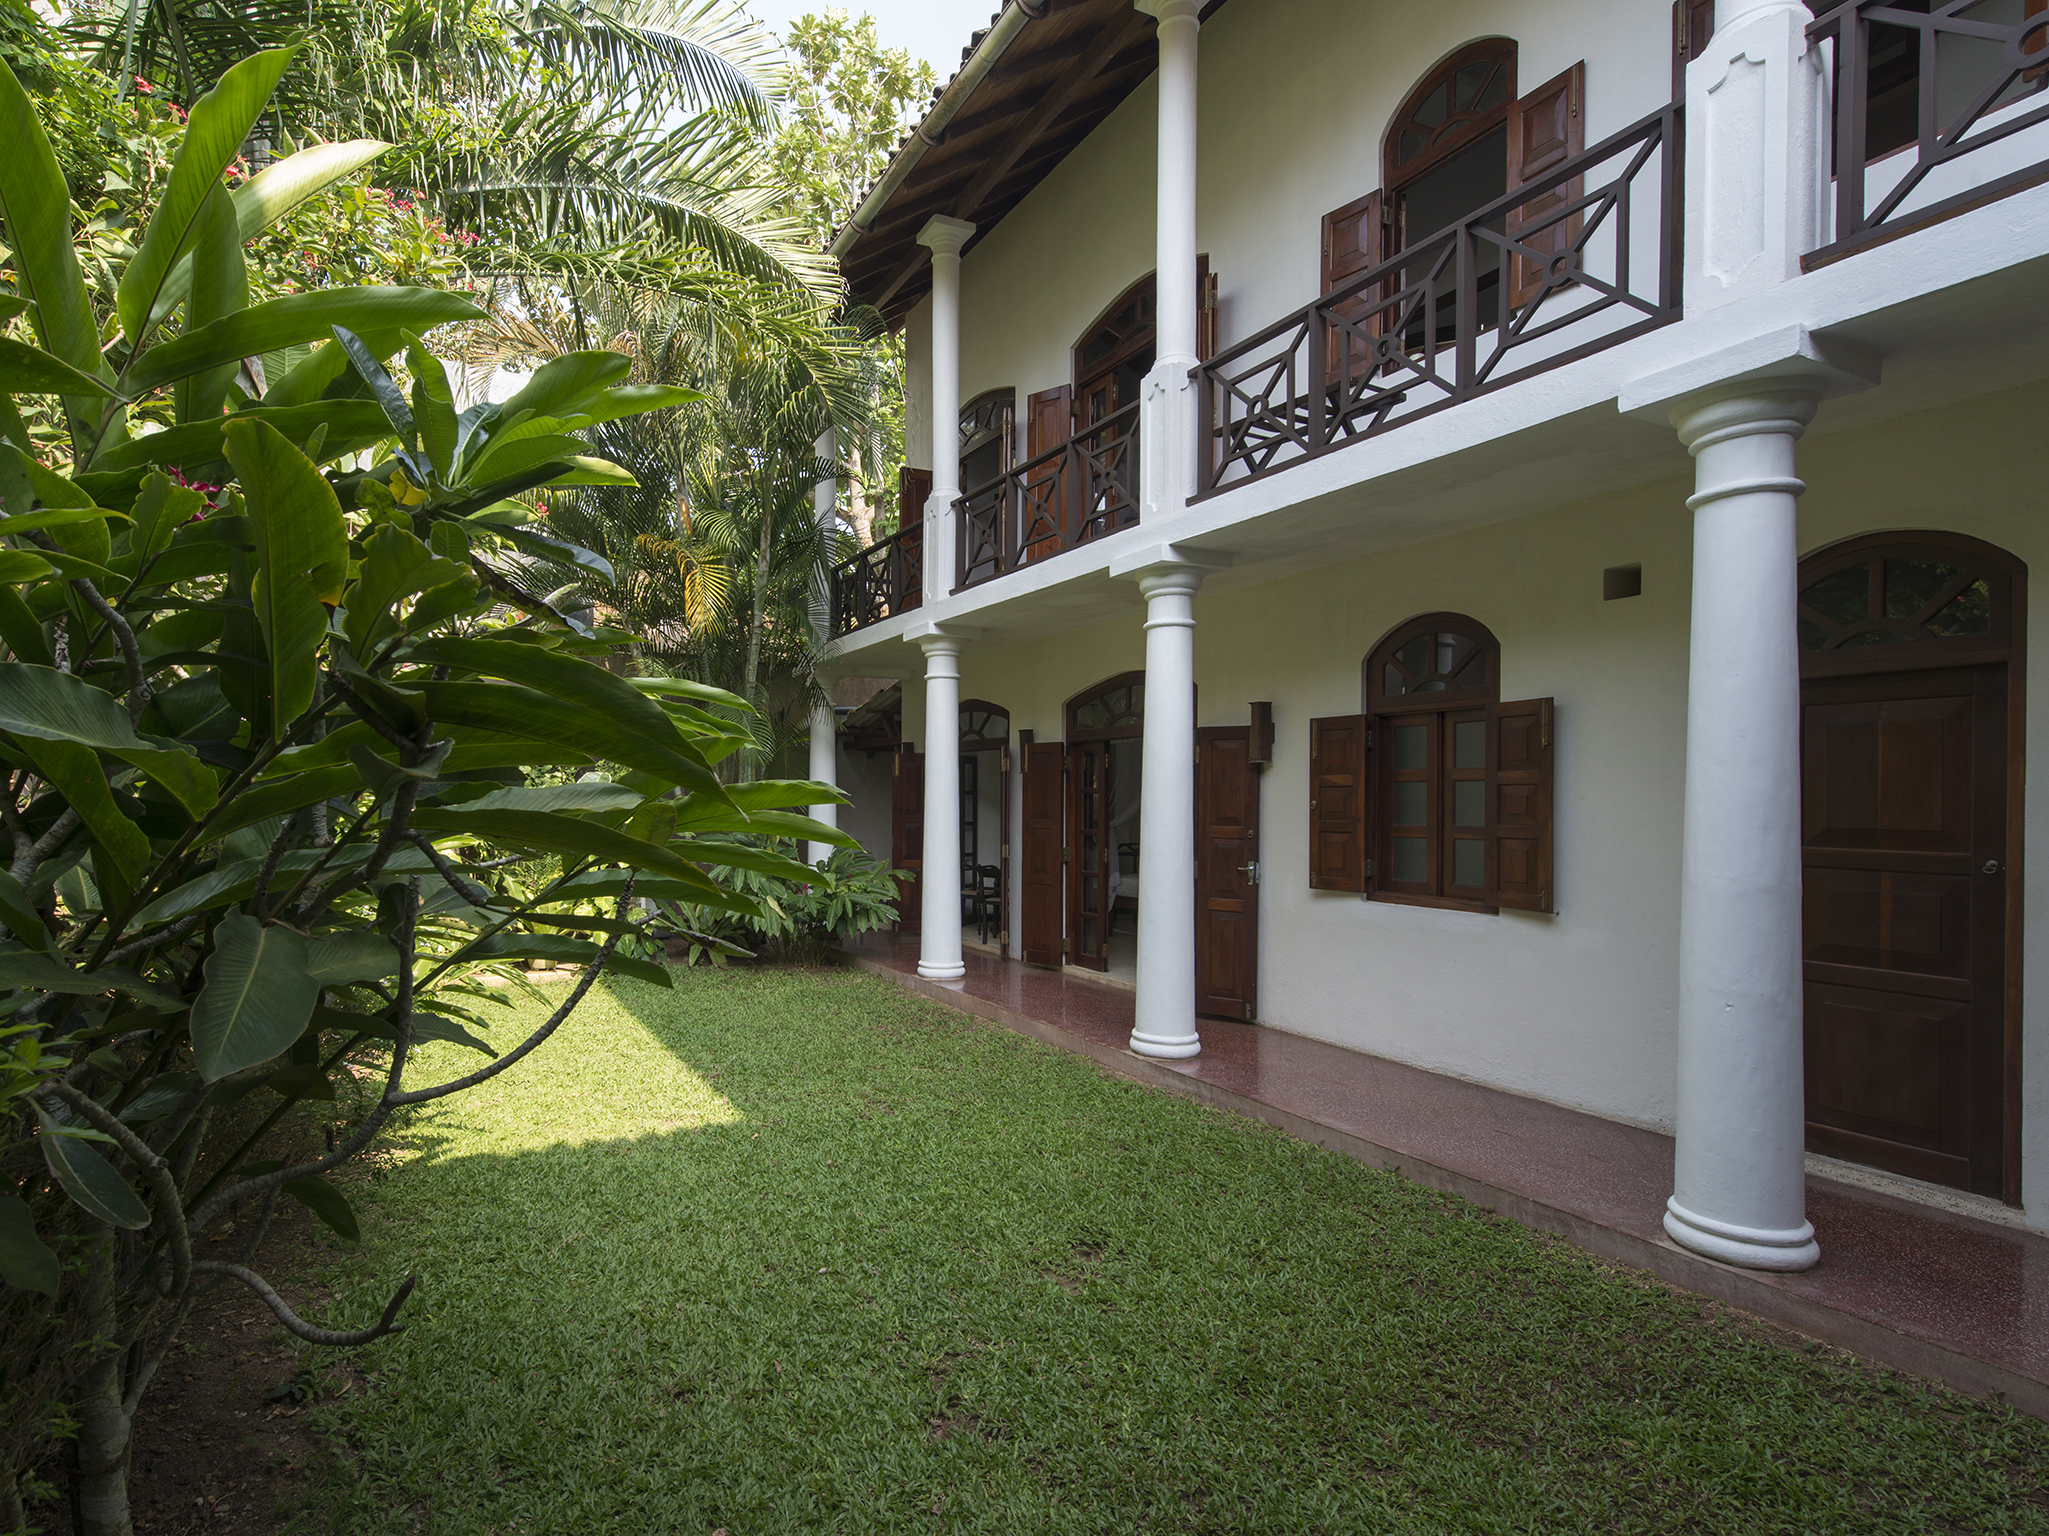 No.39 Galle Fort Villa